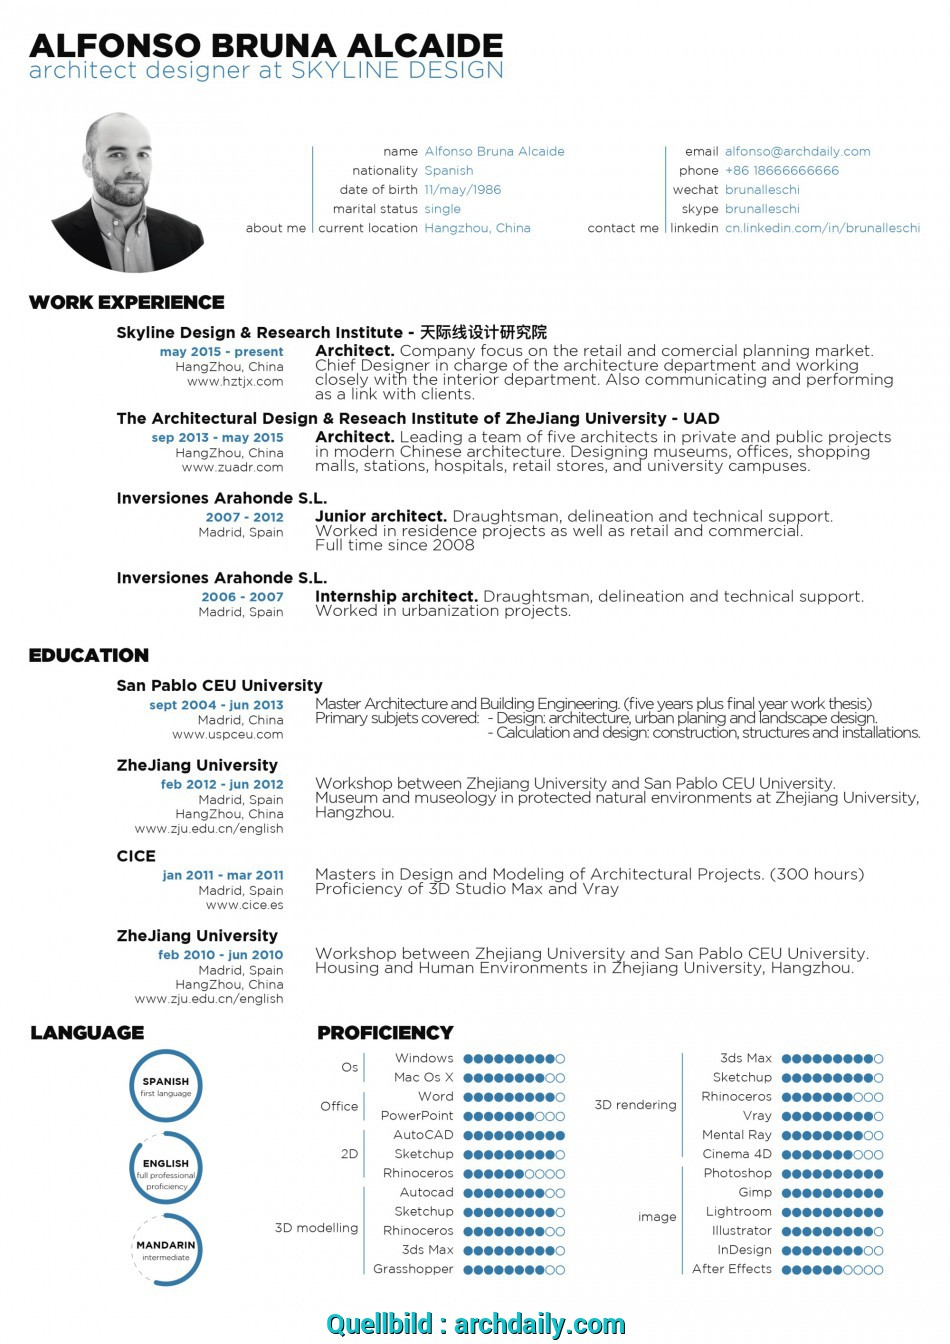 Positiv The Architecture Resume CV Designs ArchDaily Cv English Example Architect